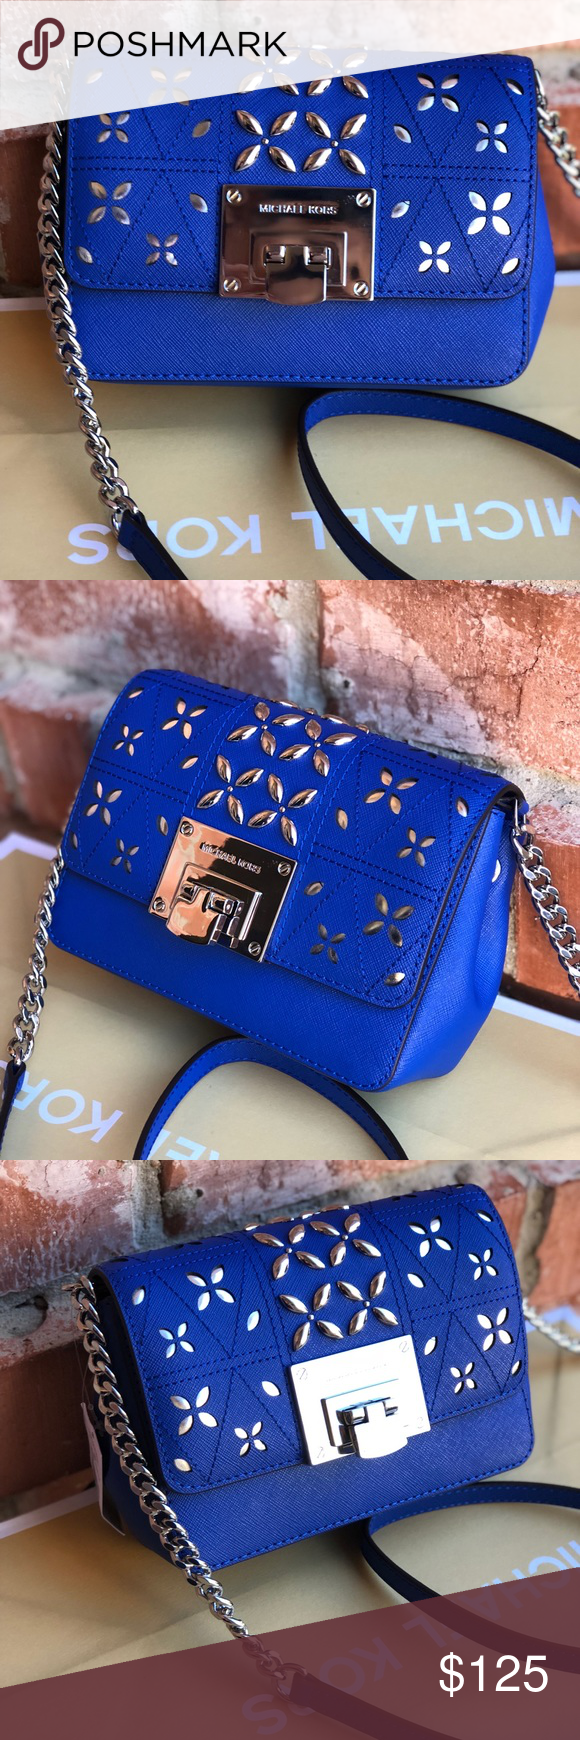 8de980eee052 Michael kors Tina small clutch crossbody bag Color: Electric Blue Perforated  Stud Saffiano Leather Clutch